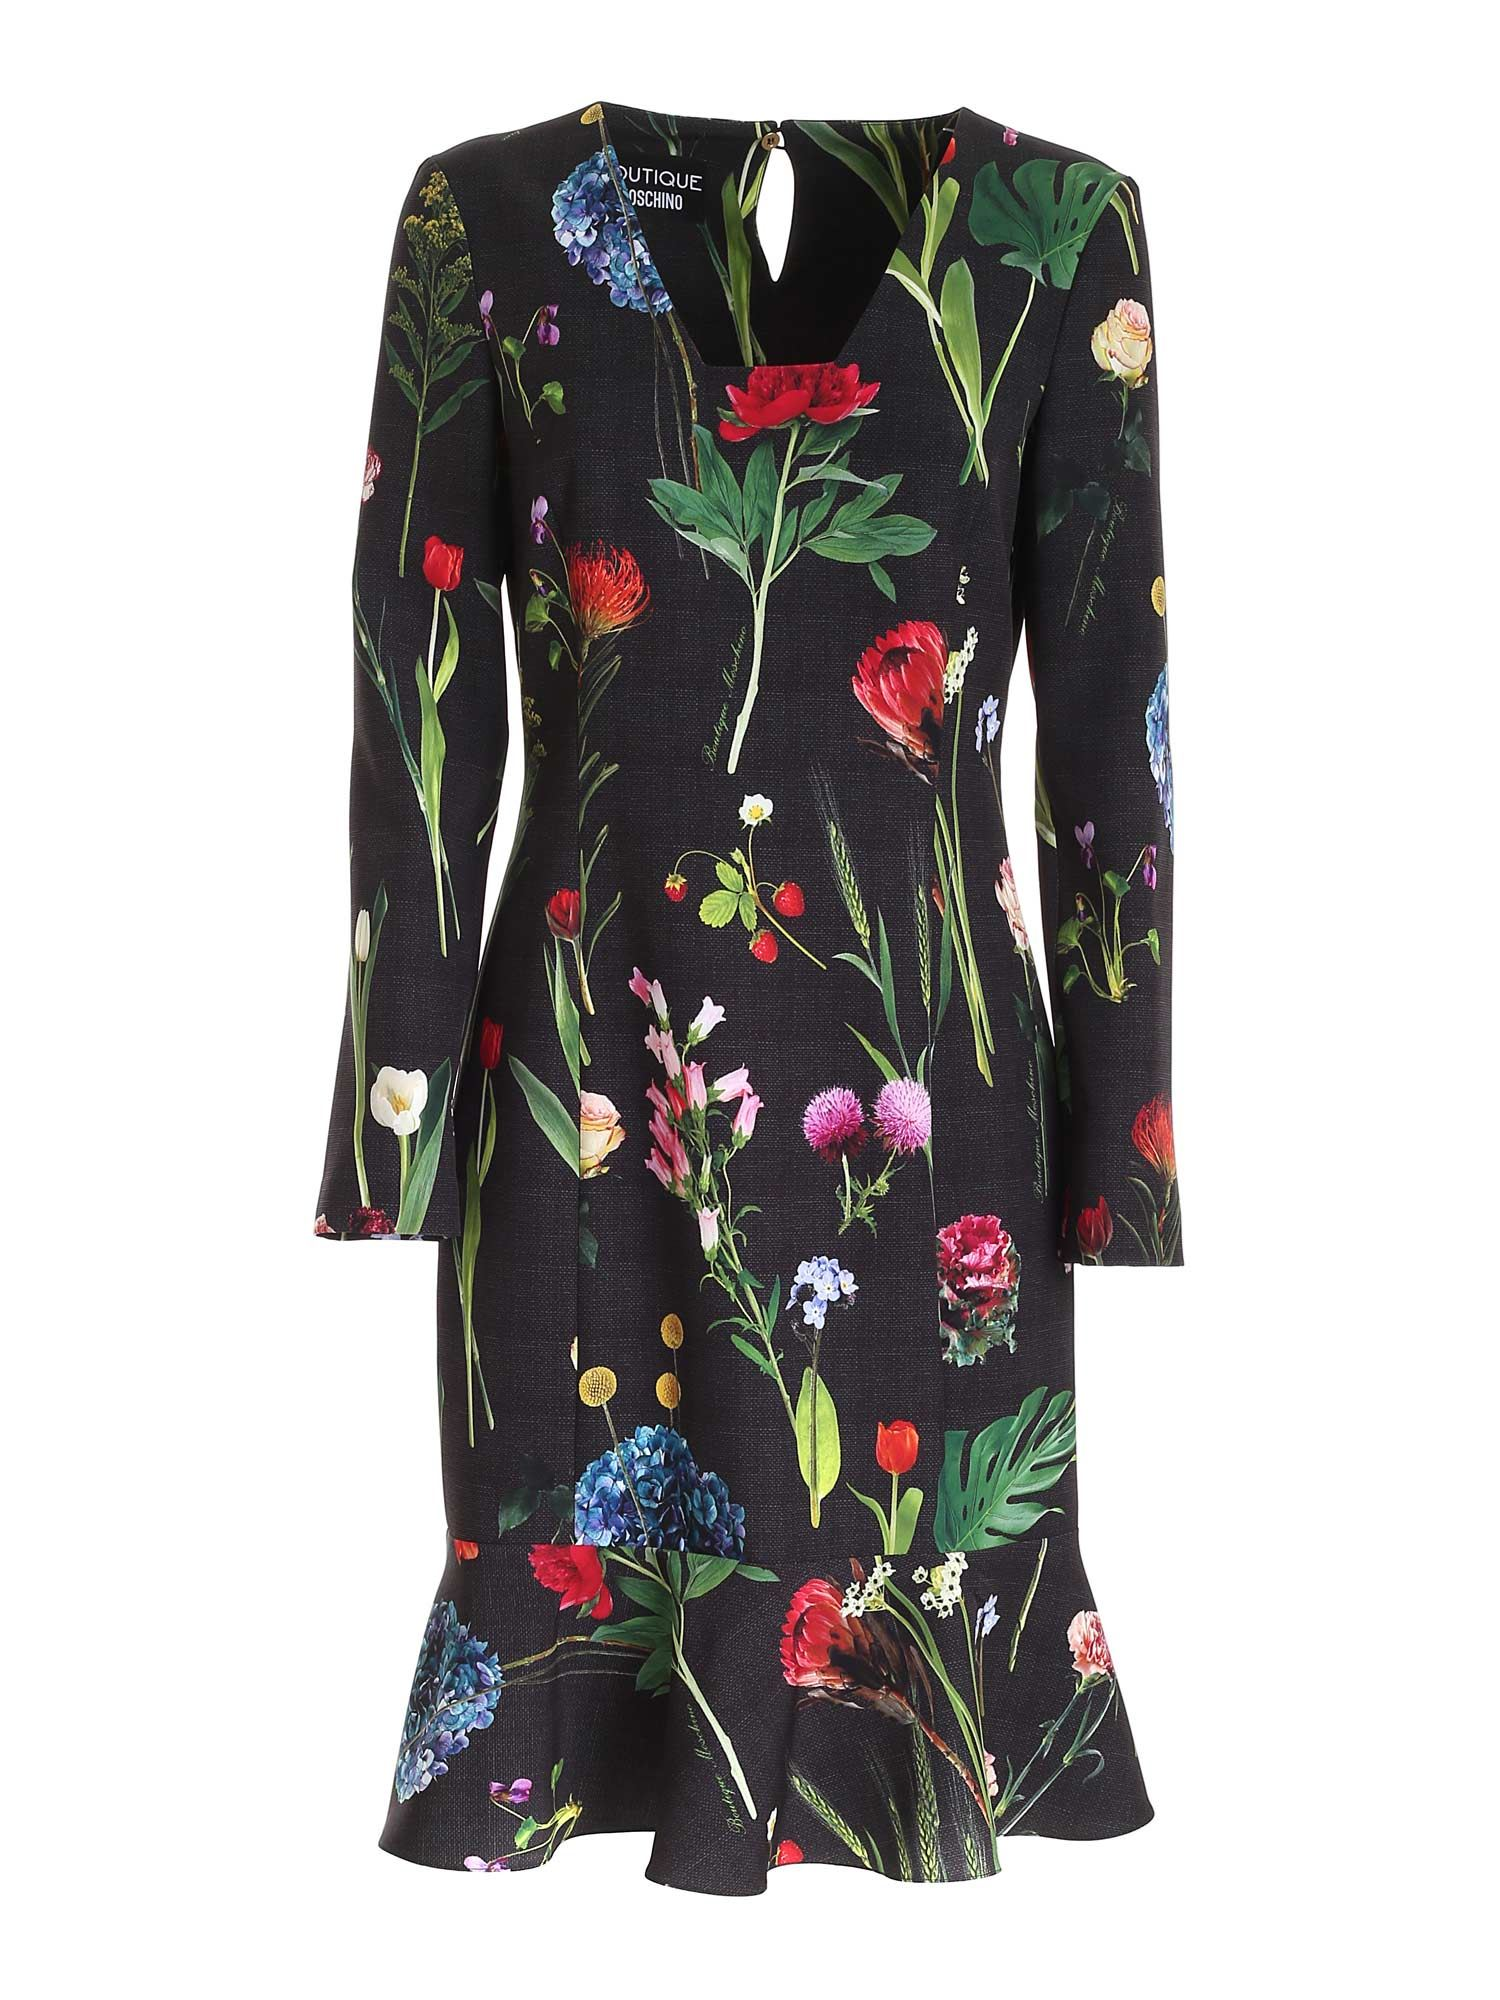 Moschino Boutique MOSCHINO BOUTIQUE FLORAL PRINT DRESS IN BLACK